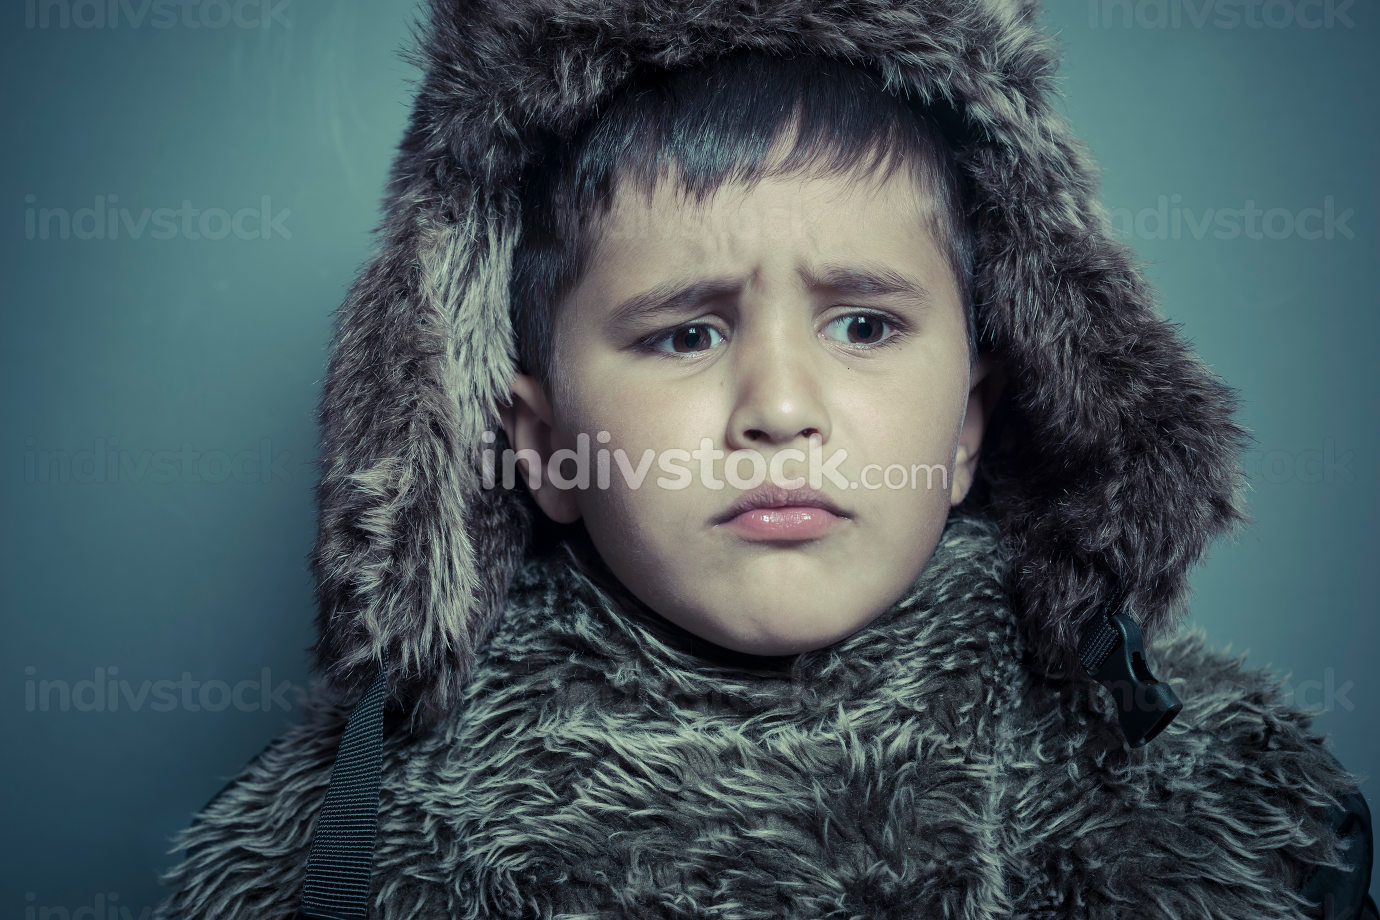 Funny child with fur hat and winter coat, cold concept and storm